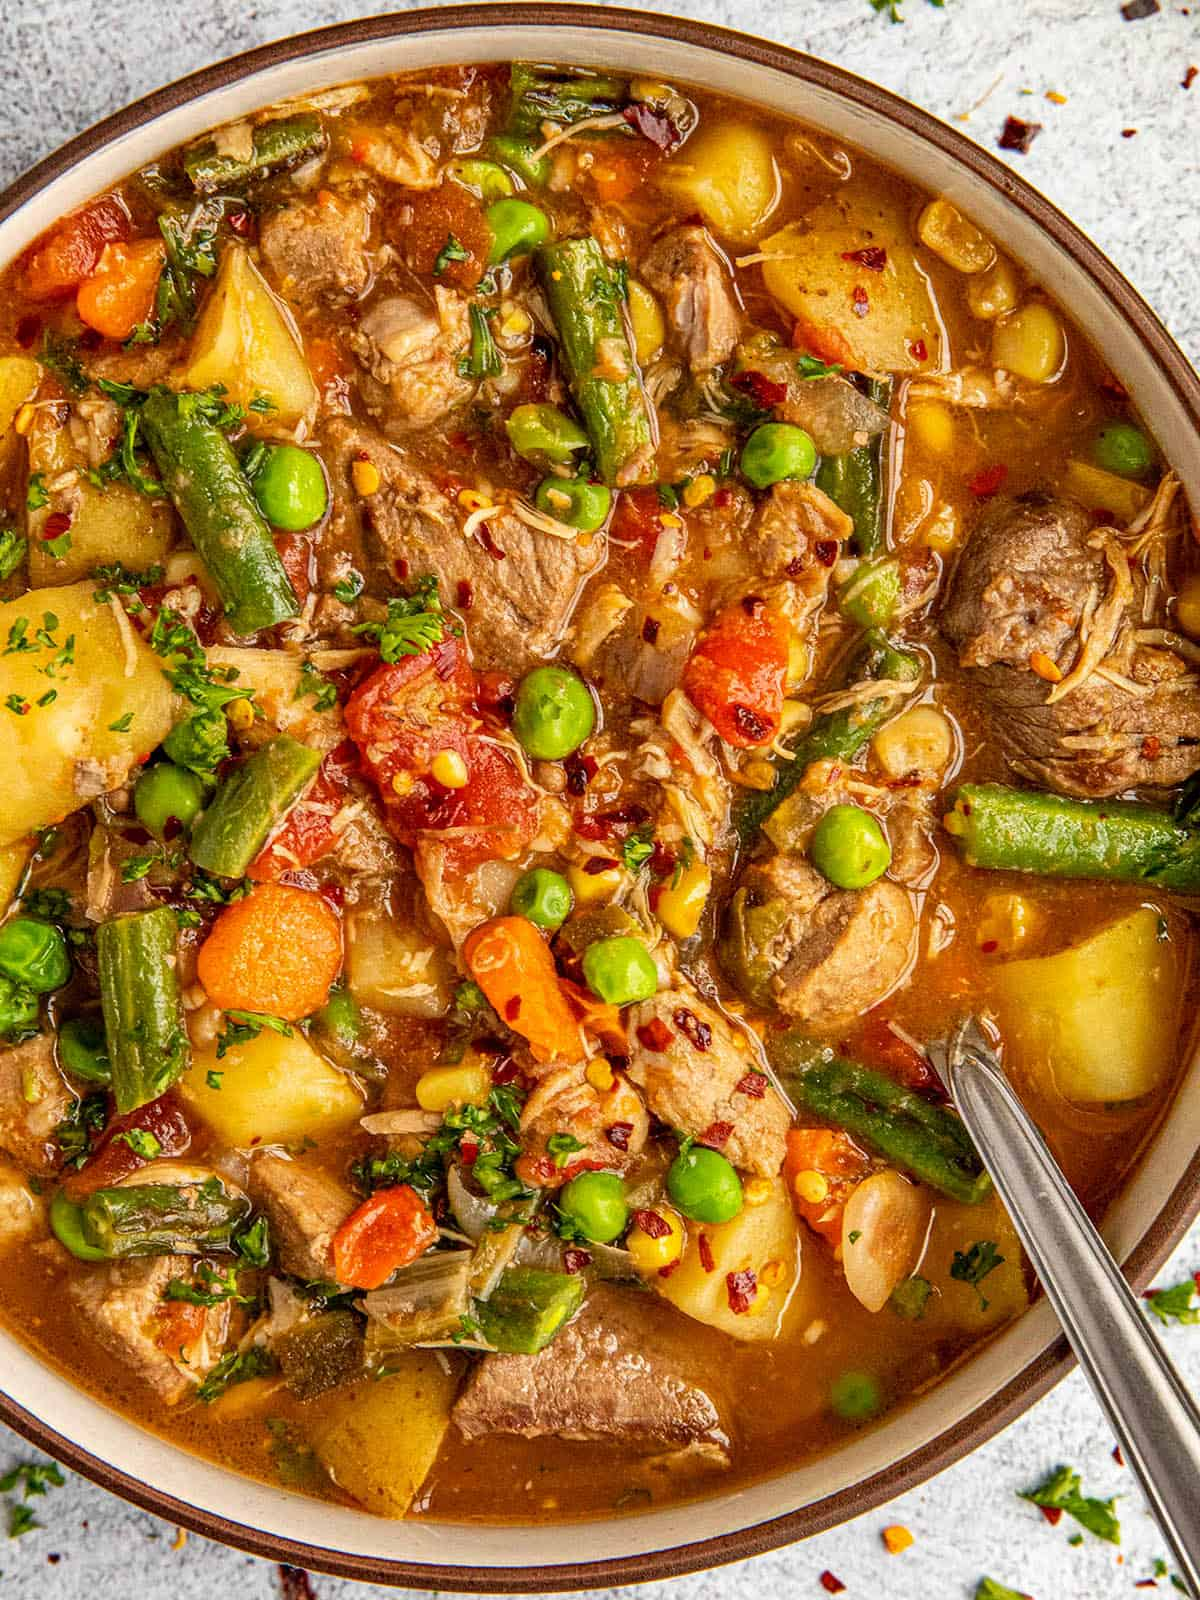 The Best Booyah Stew Recipe (Story)